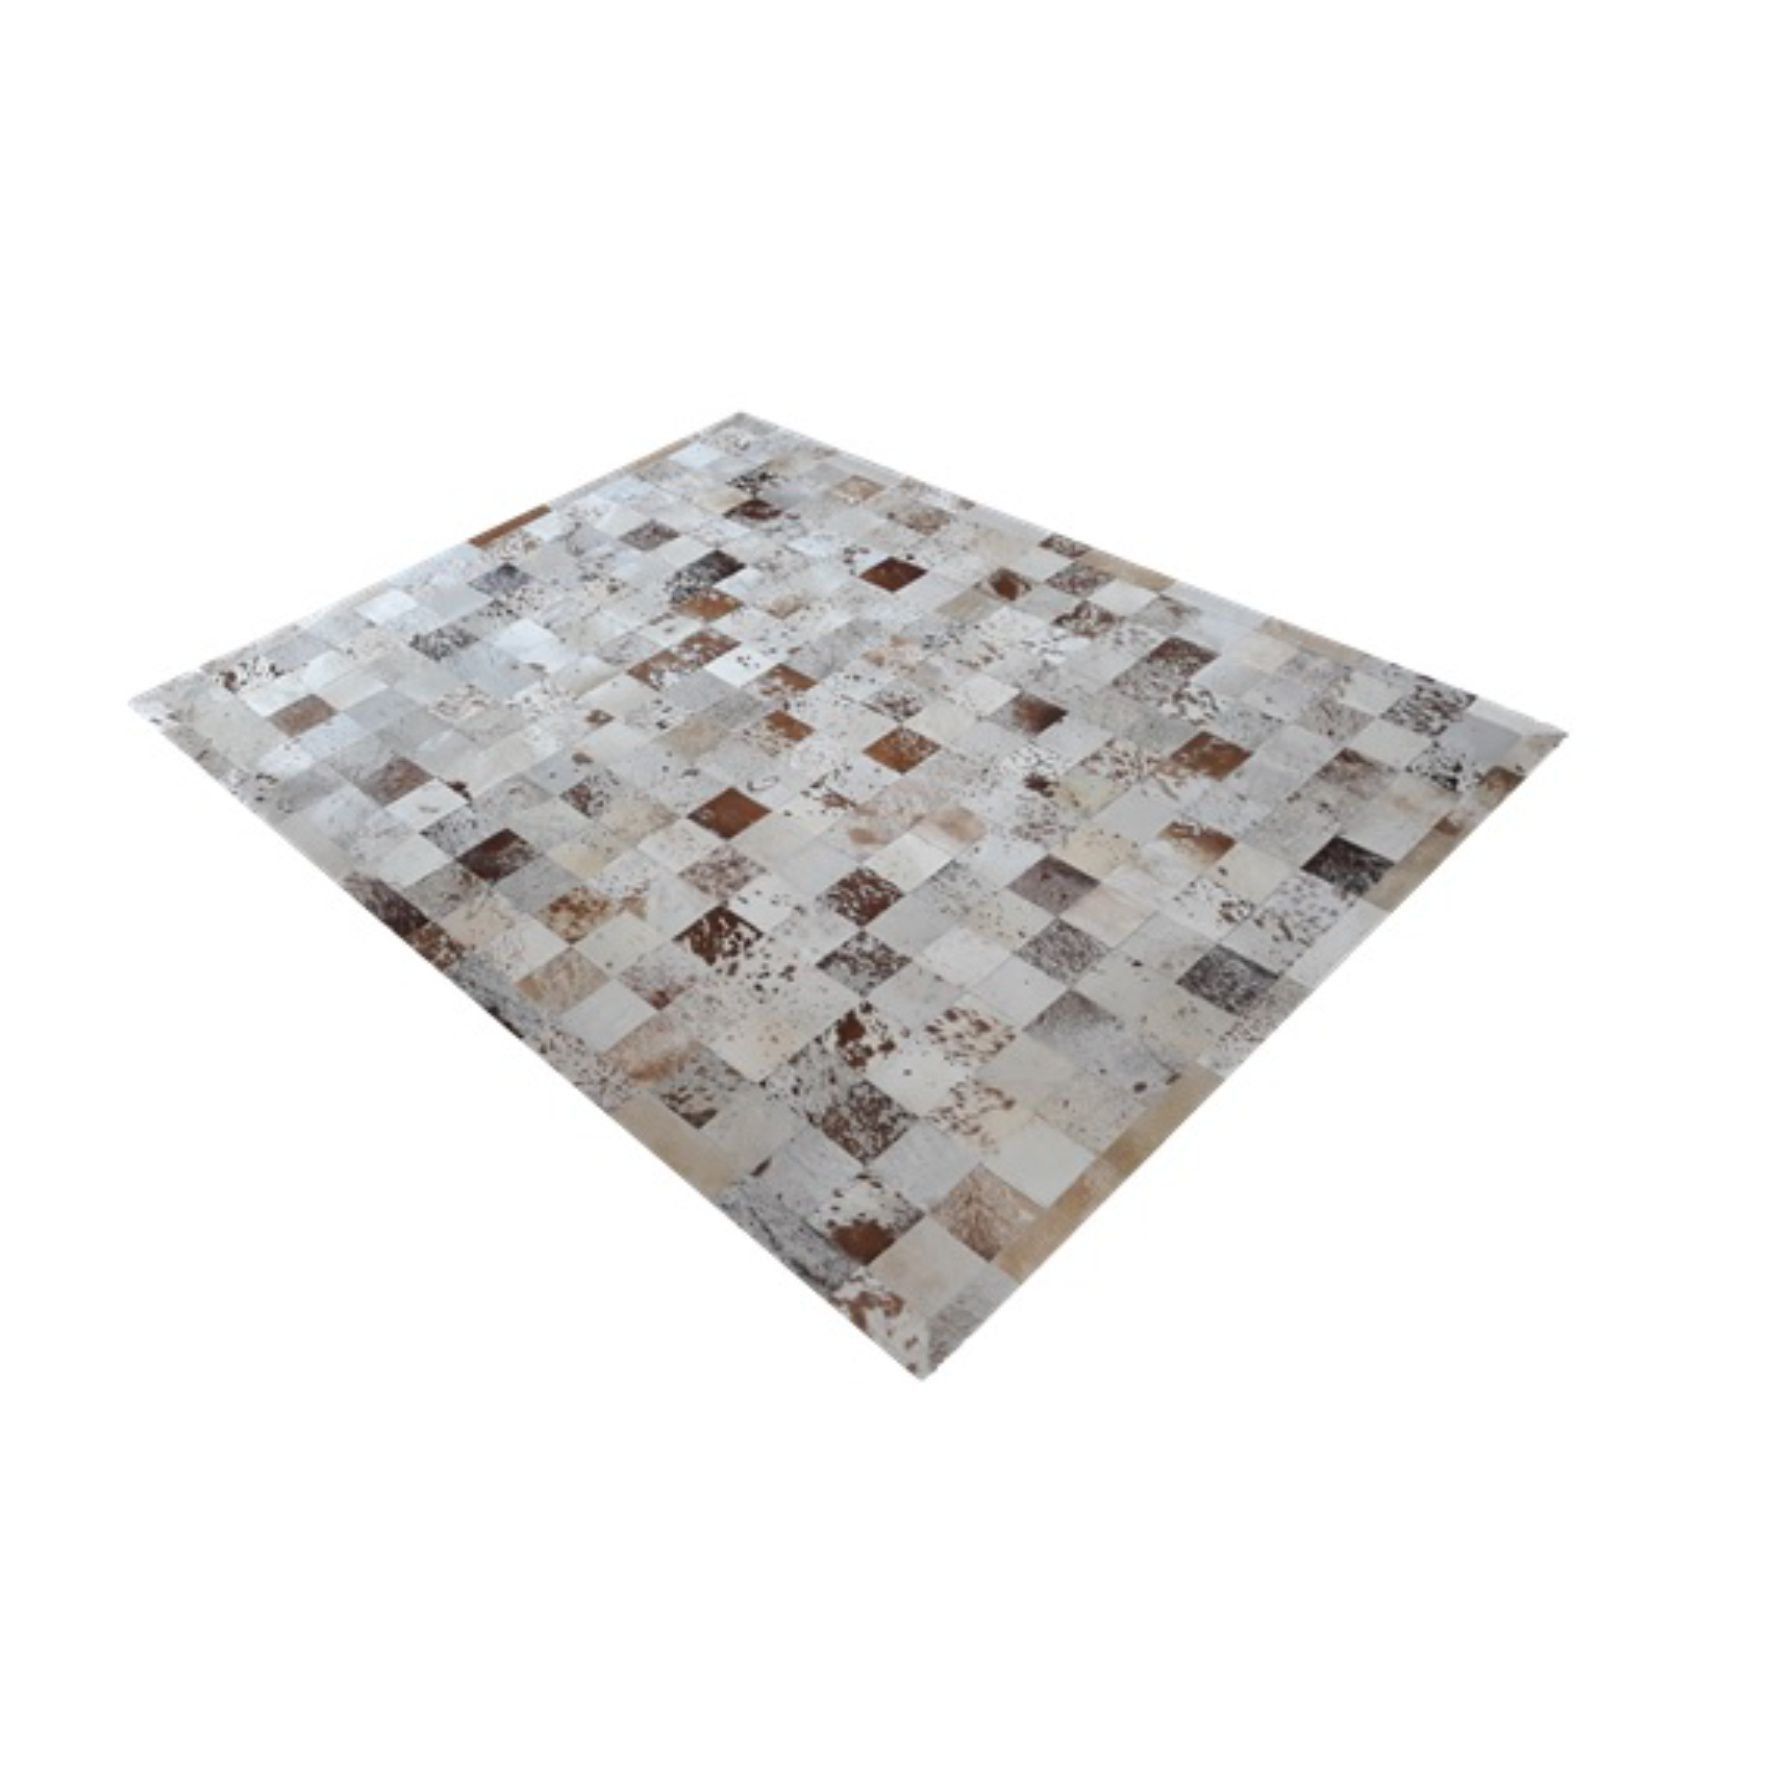 Tapete de Couro de Boi 2,5m X 2,0m Natural Costurado 10cm x 10cm Com Borda - OF30